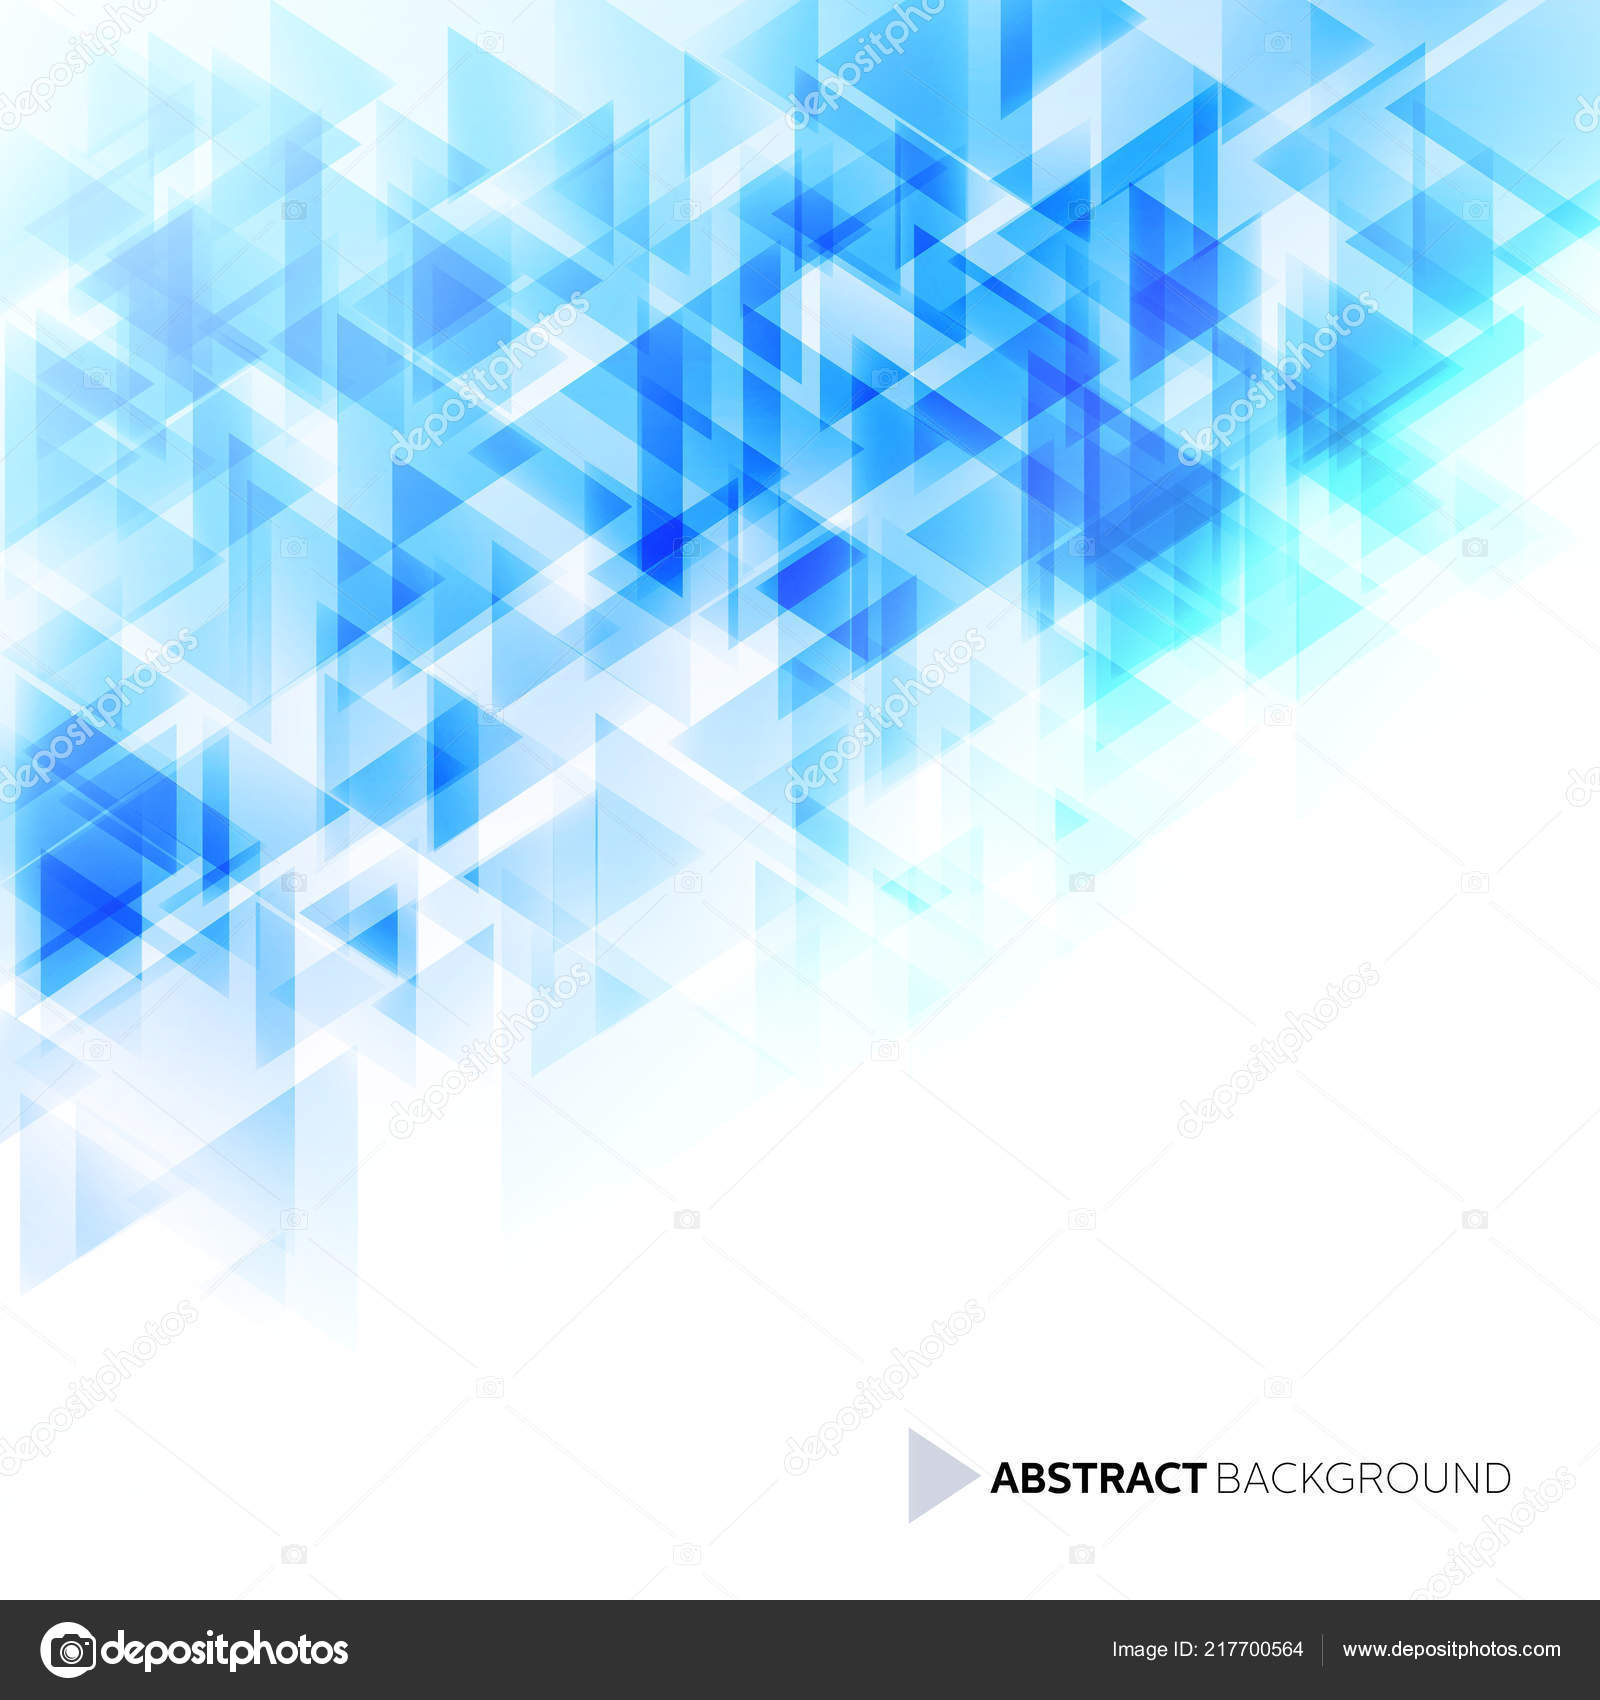 Geometric Shapes Abstract Background Design Vector